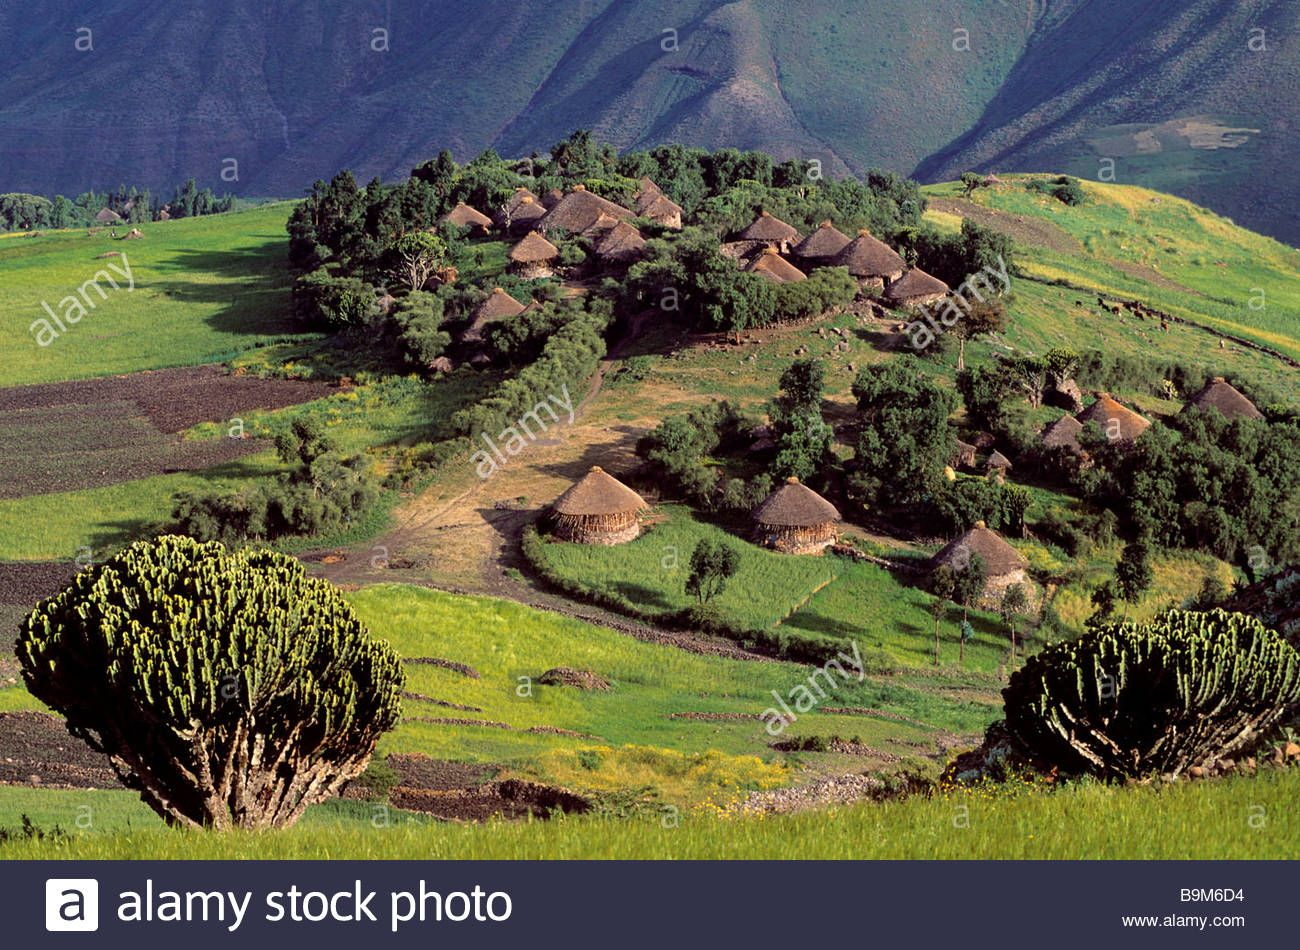 Ethiopia, Wolo, Lalibela area, village of Wollo tukuls (huts